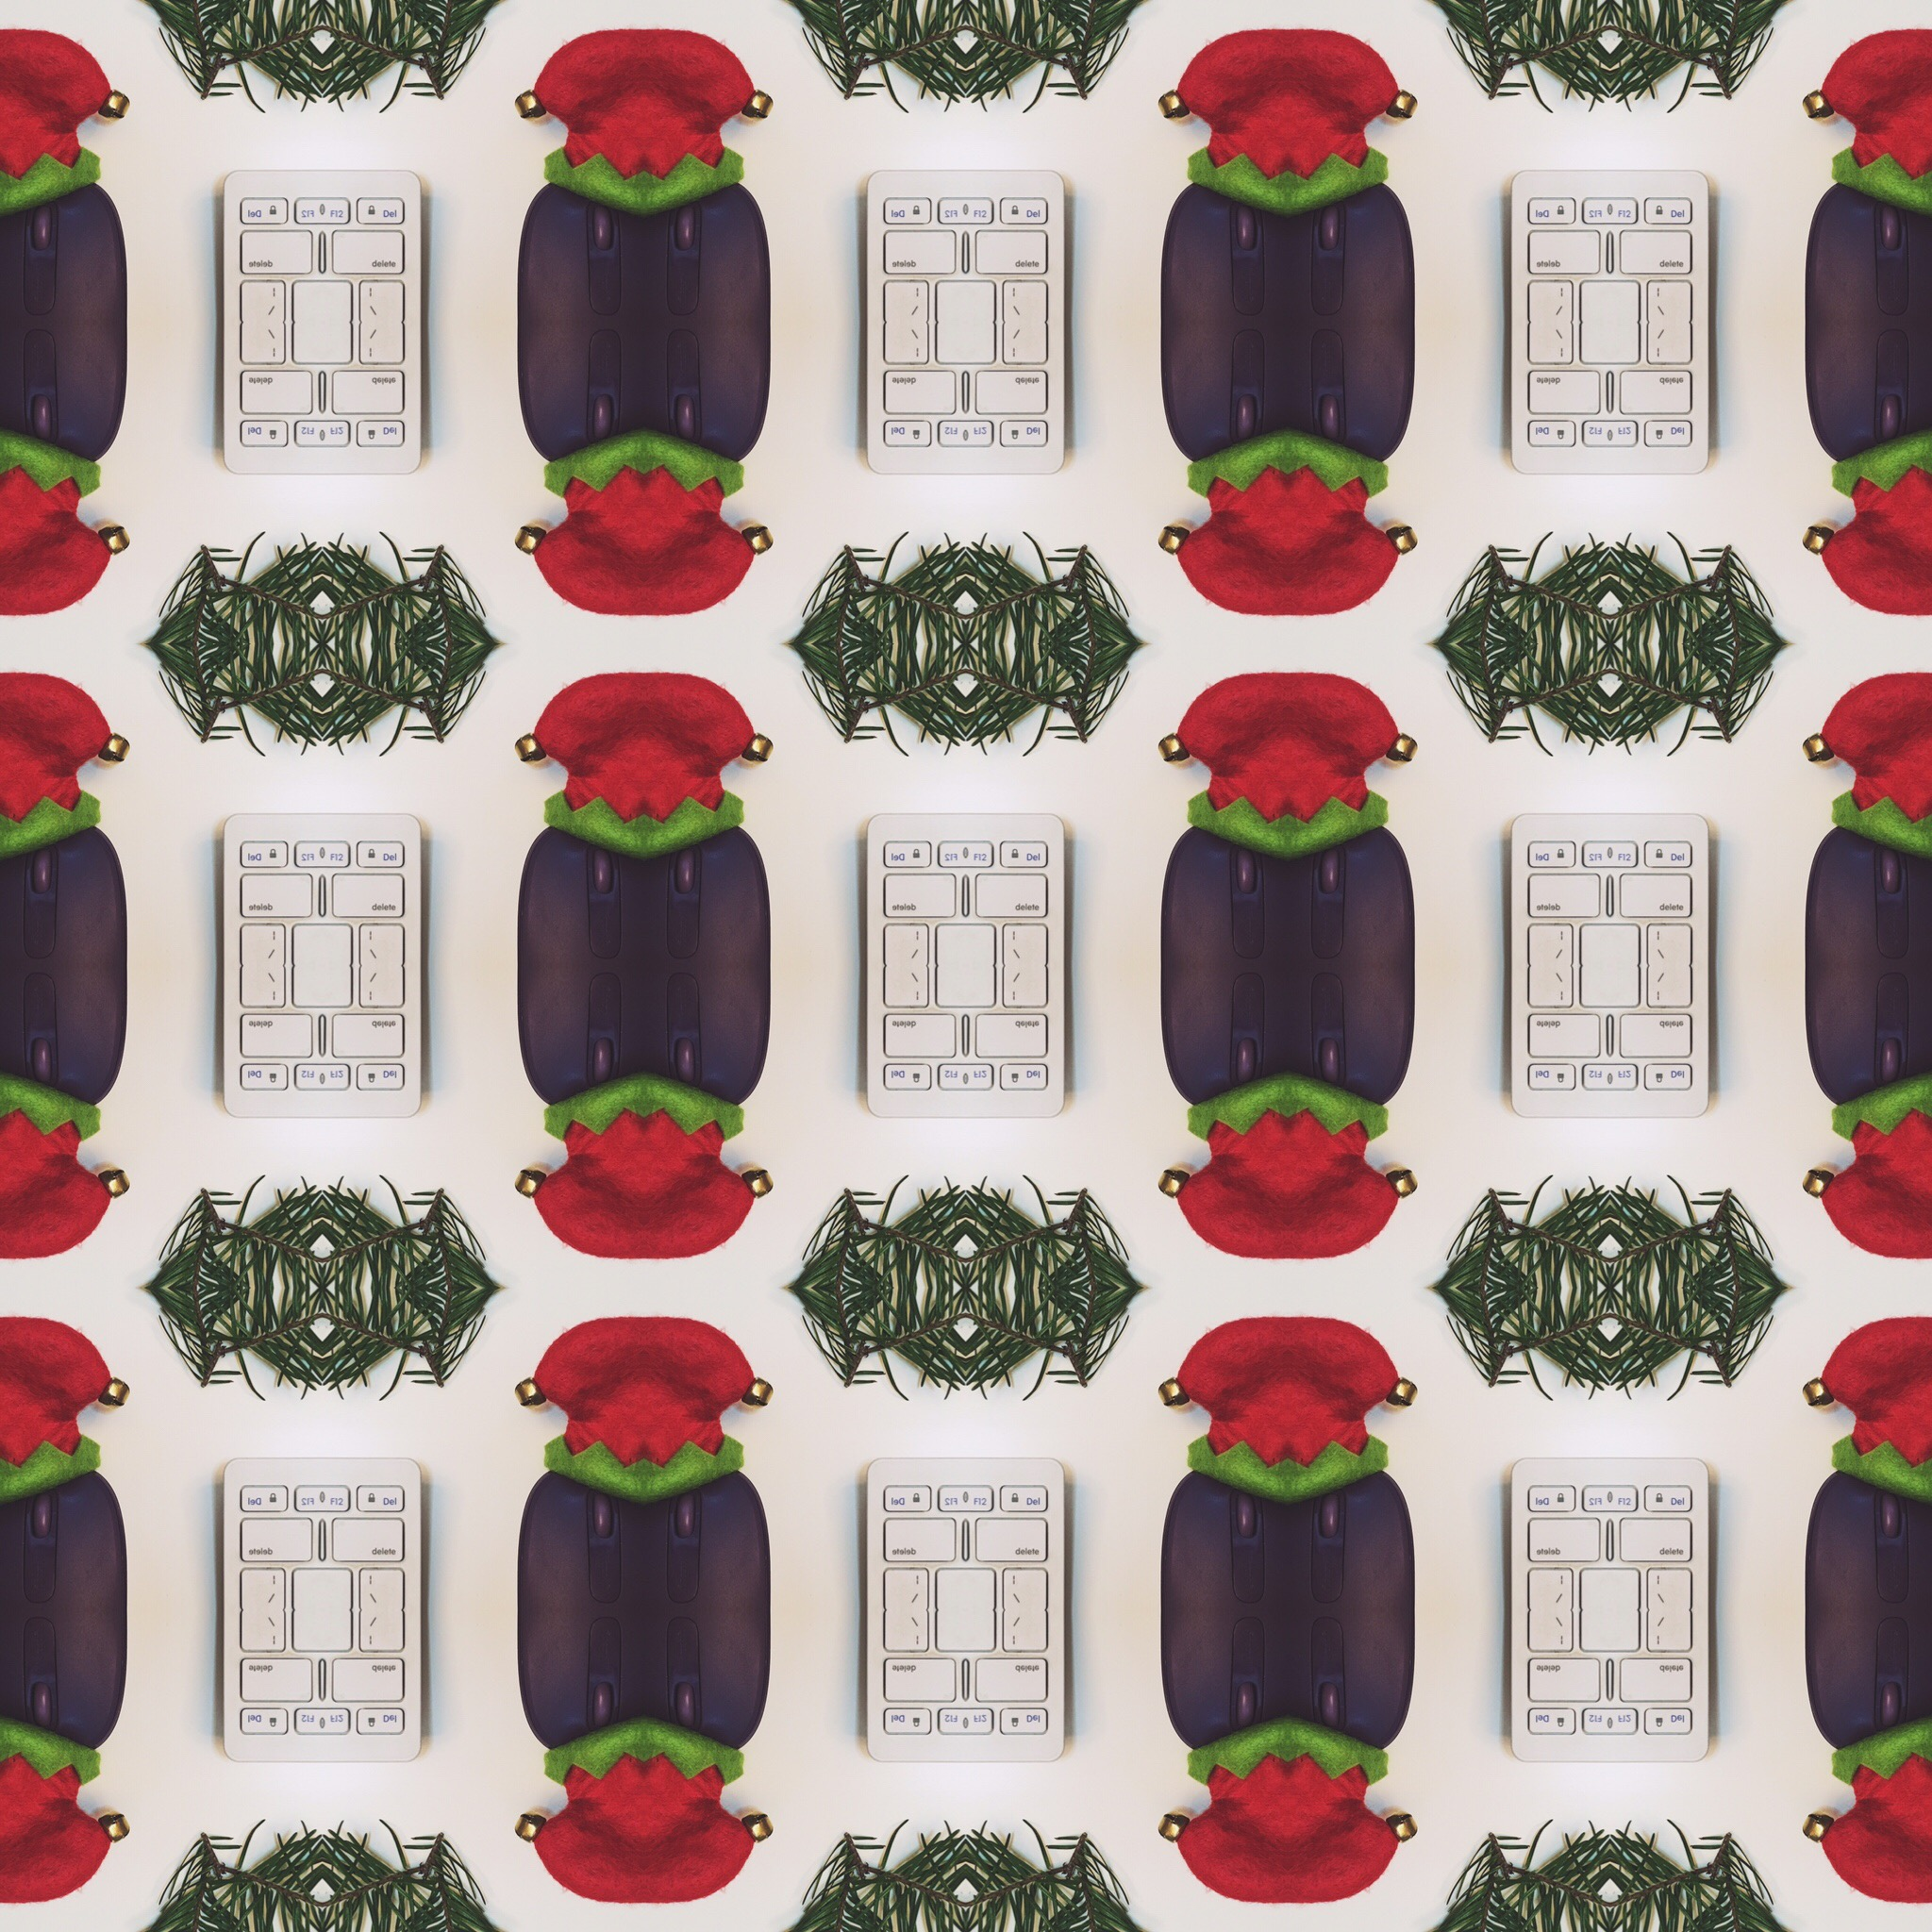 lcm-liveclothesminded-paperless post-christmas post-ecard-festive-holiday-kaleidoscope